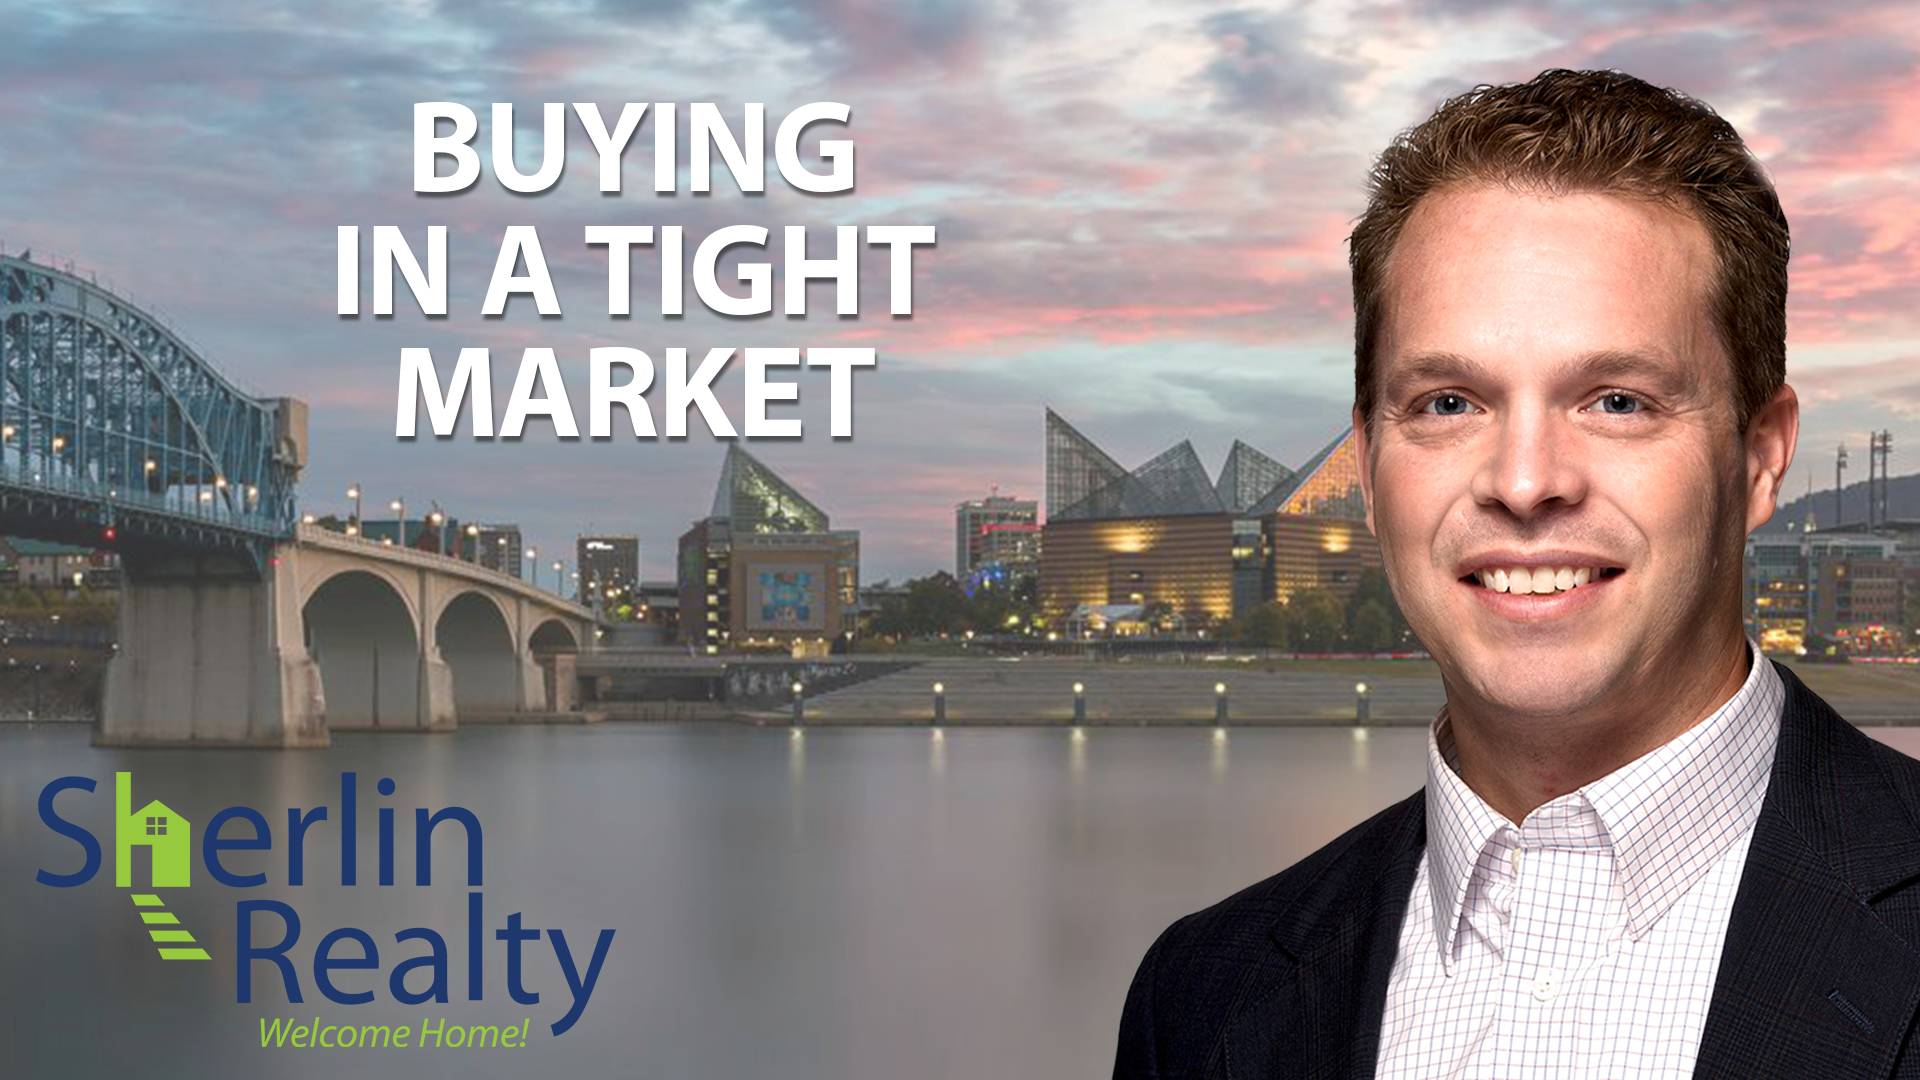 5 Tips for Buying in a Tight Market